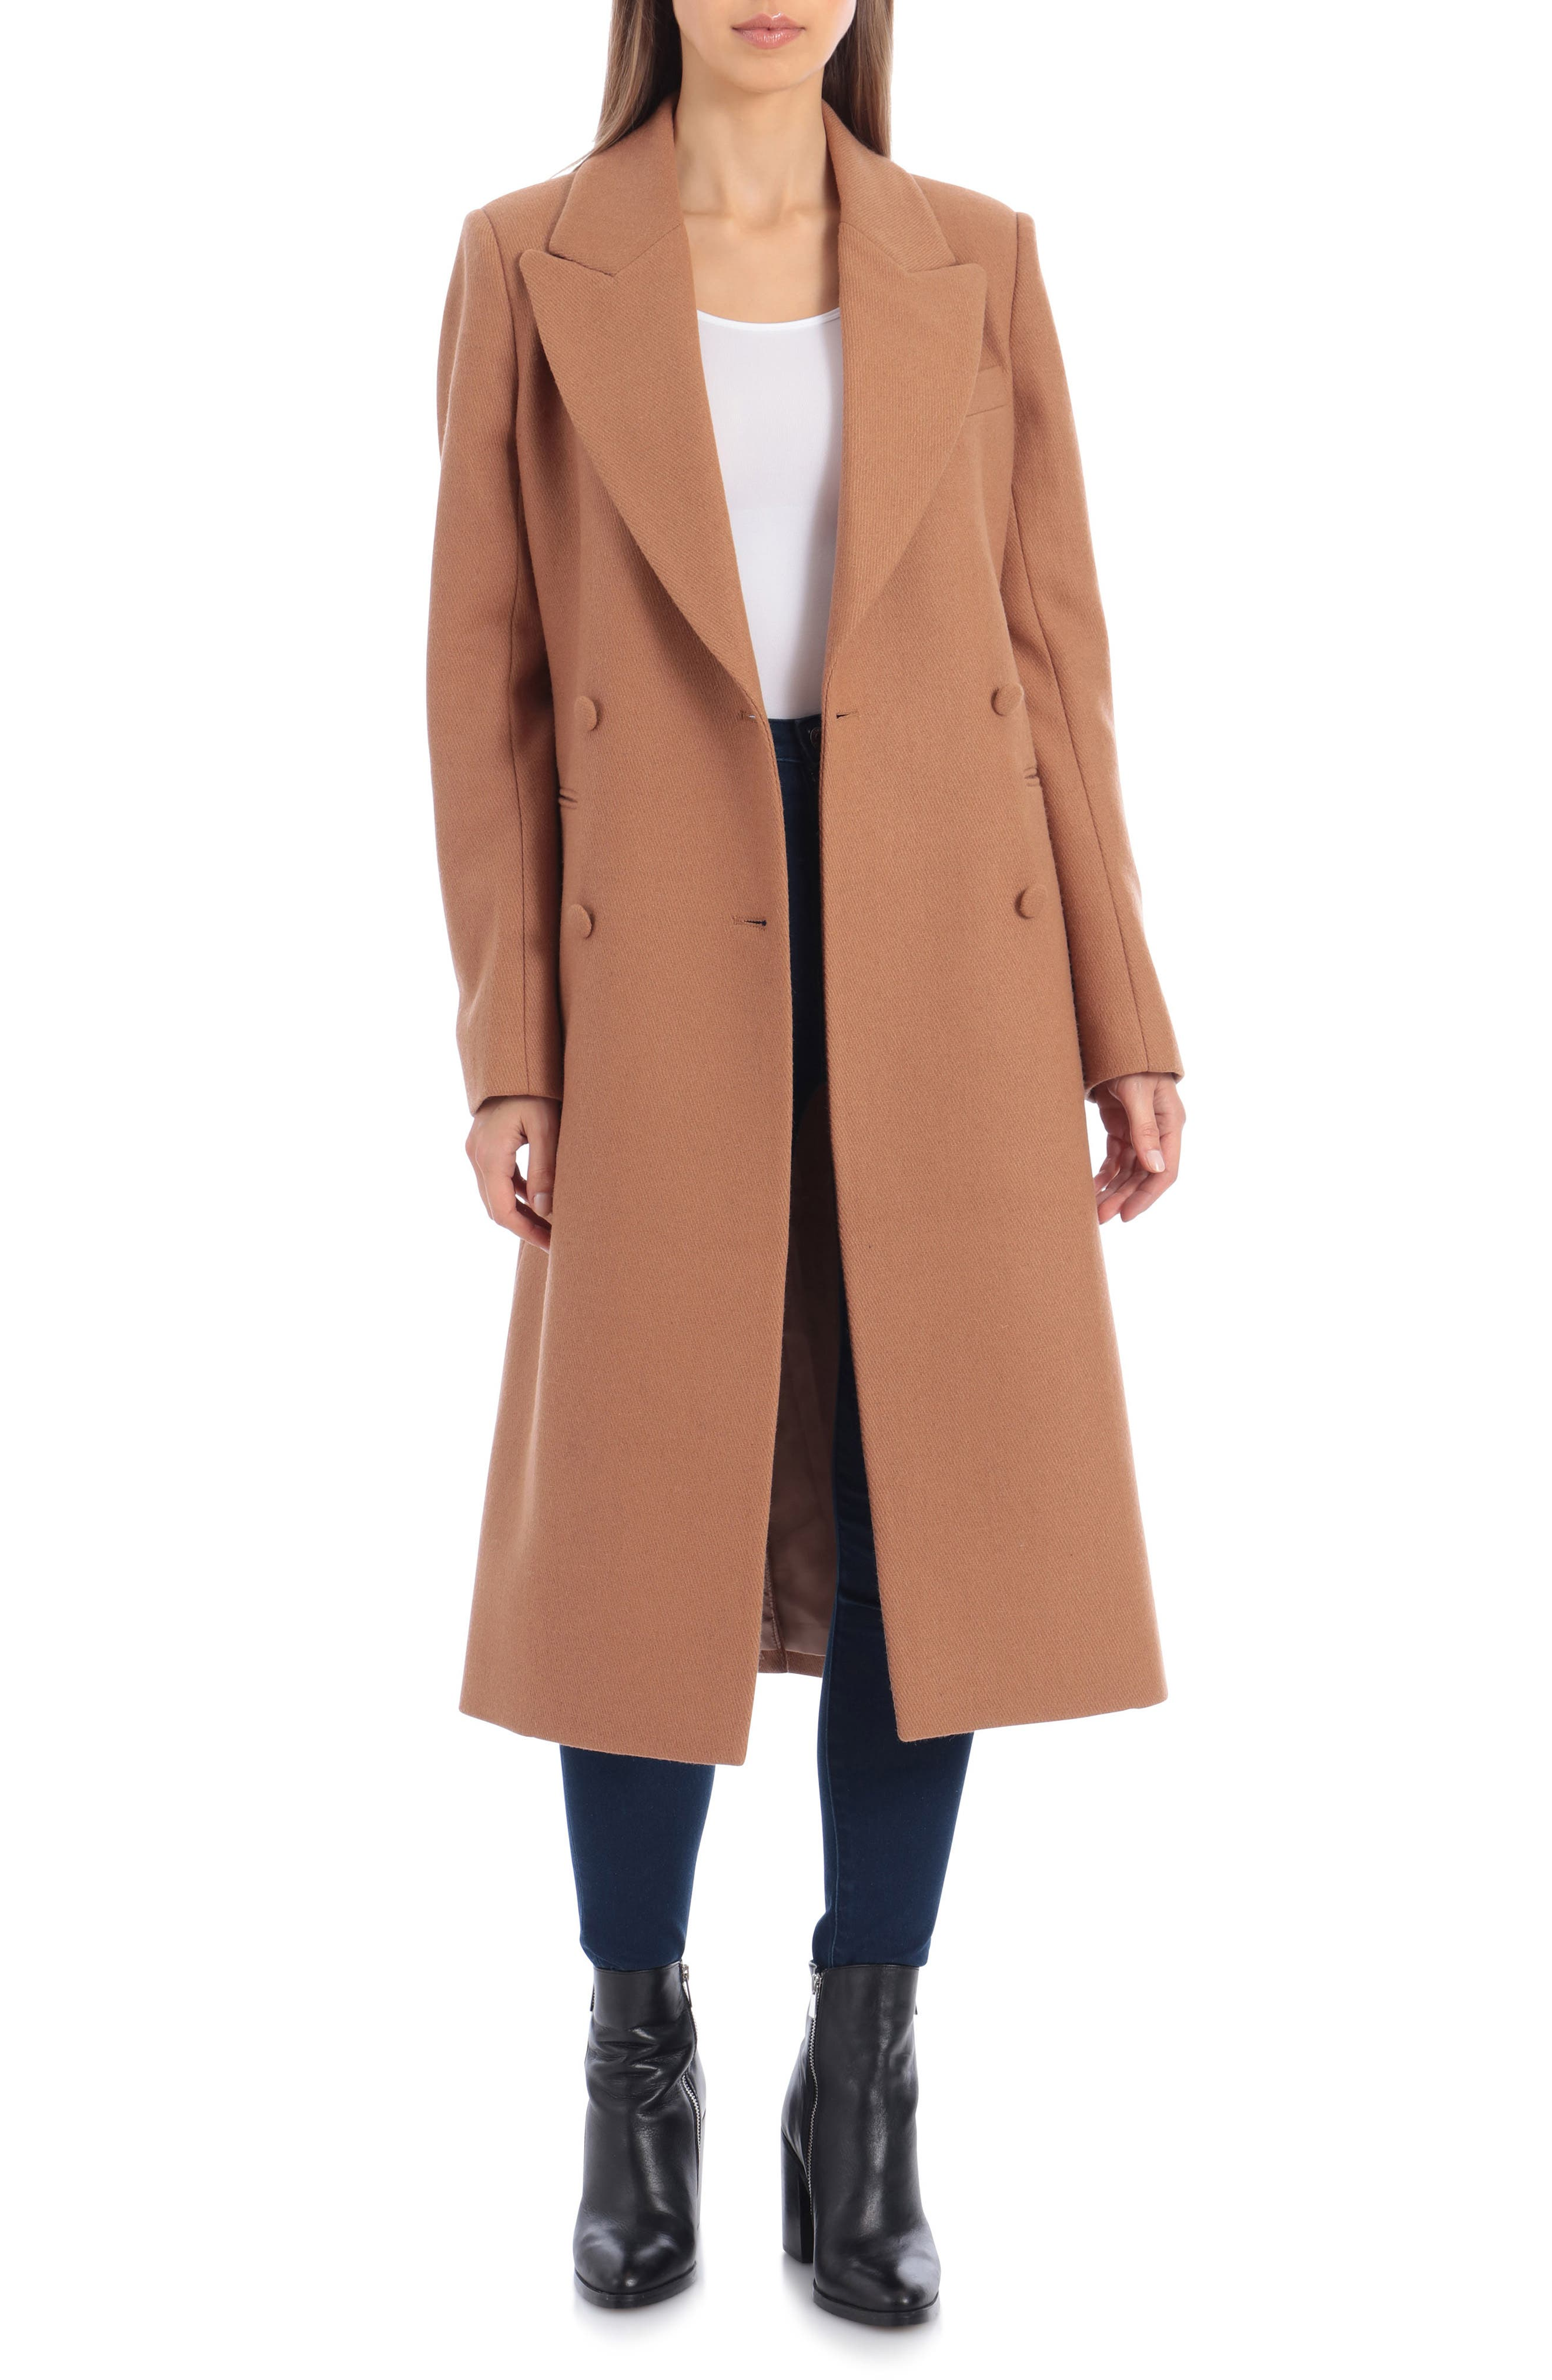 1940s Coats & Jackets Fashion History Womens Avec Les Filles Double Breasted Wool Blend Coat $199.90 AT vintagedancer.com